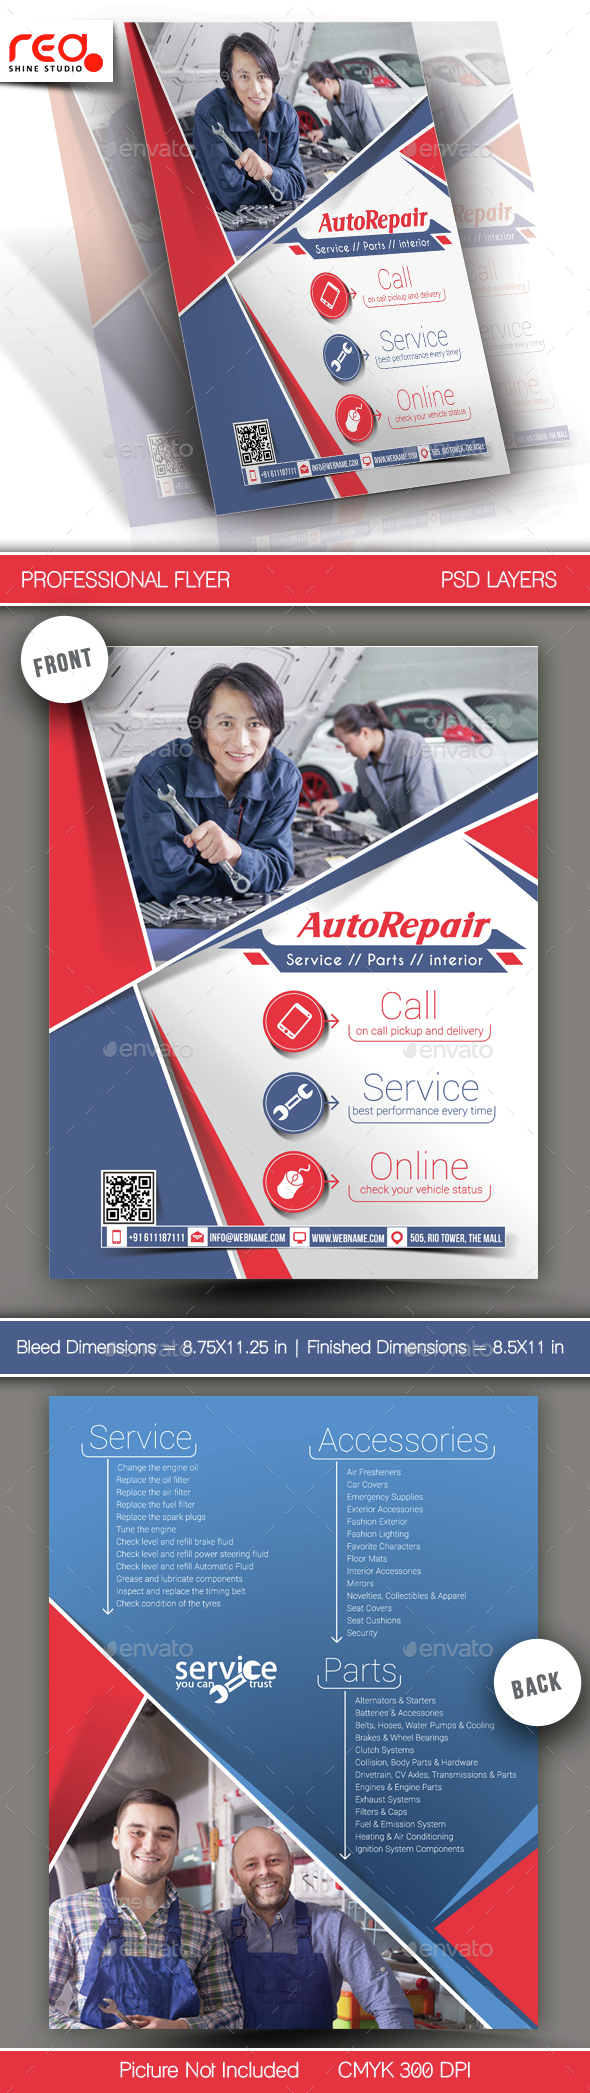 Auto Center Flyer Template  - Corporate Flyers